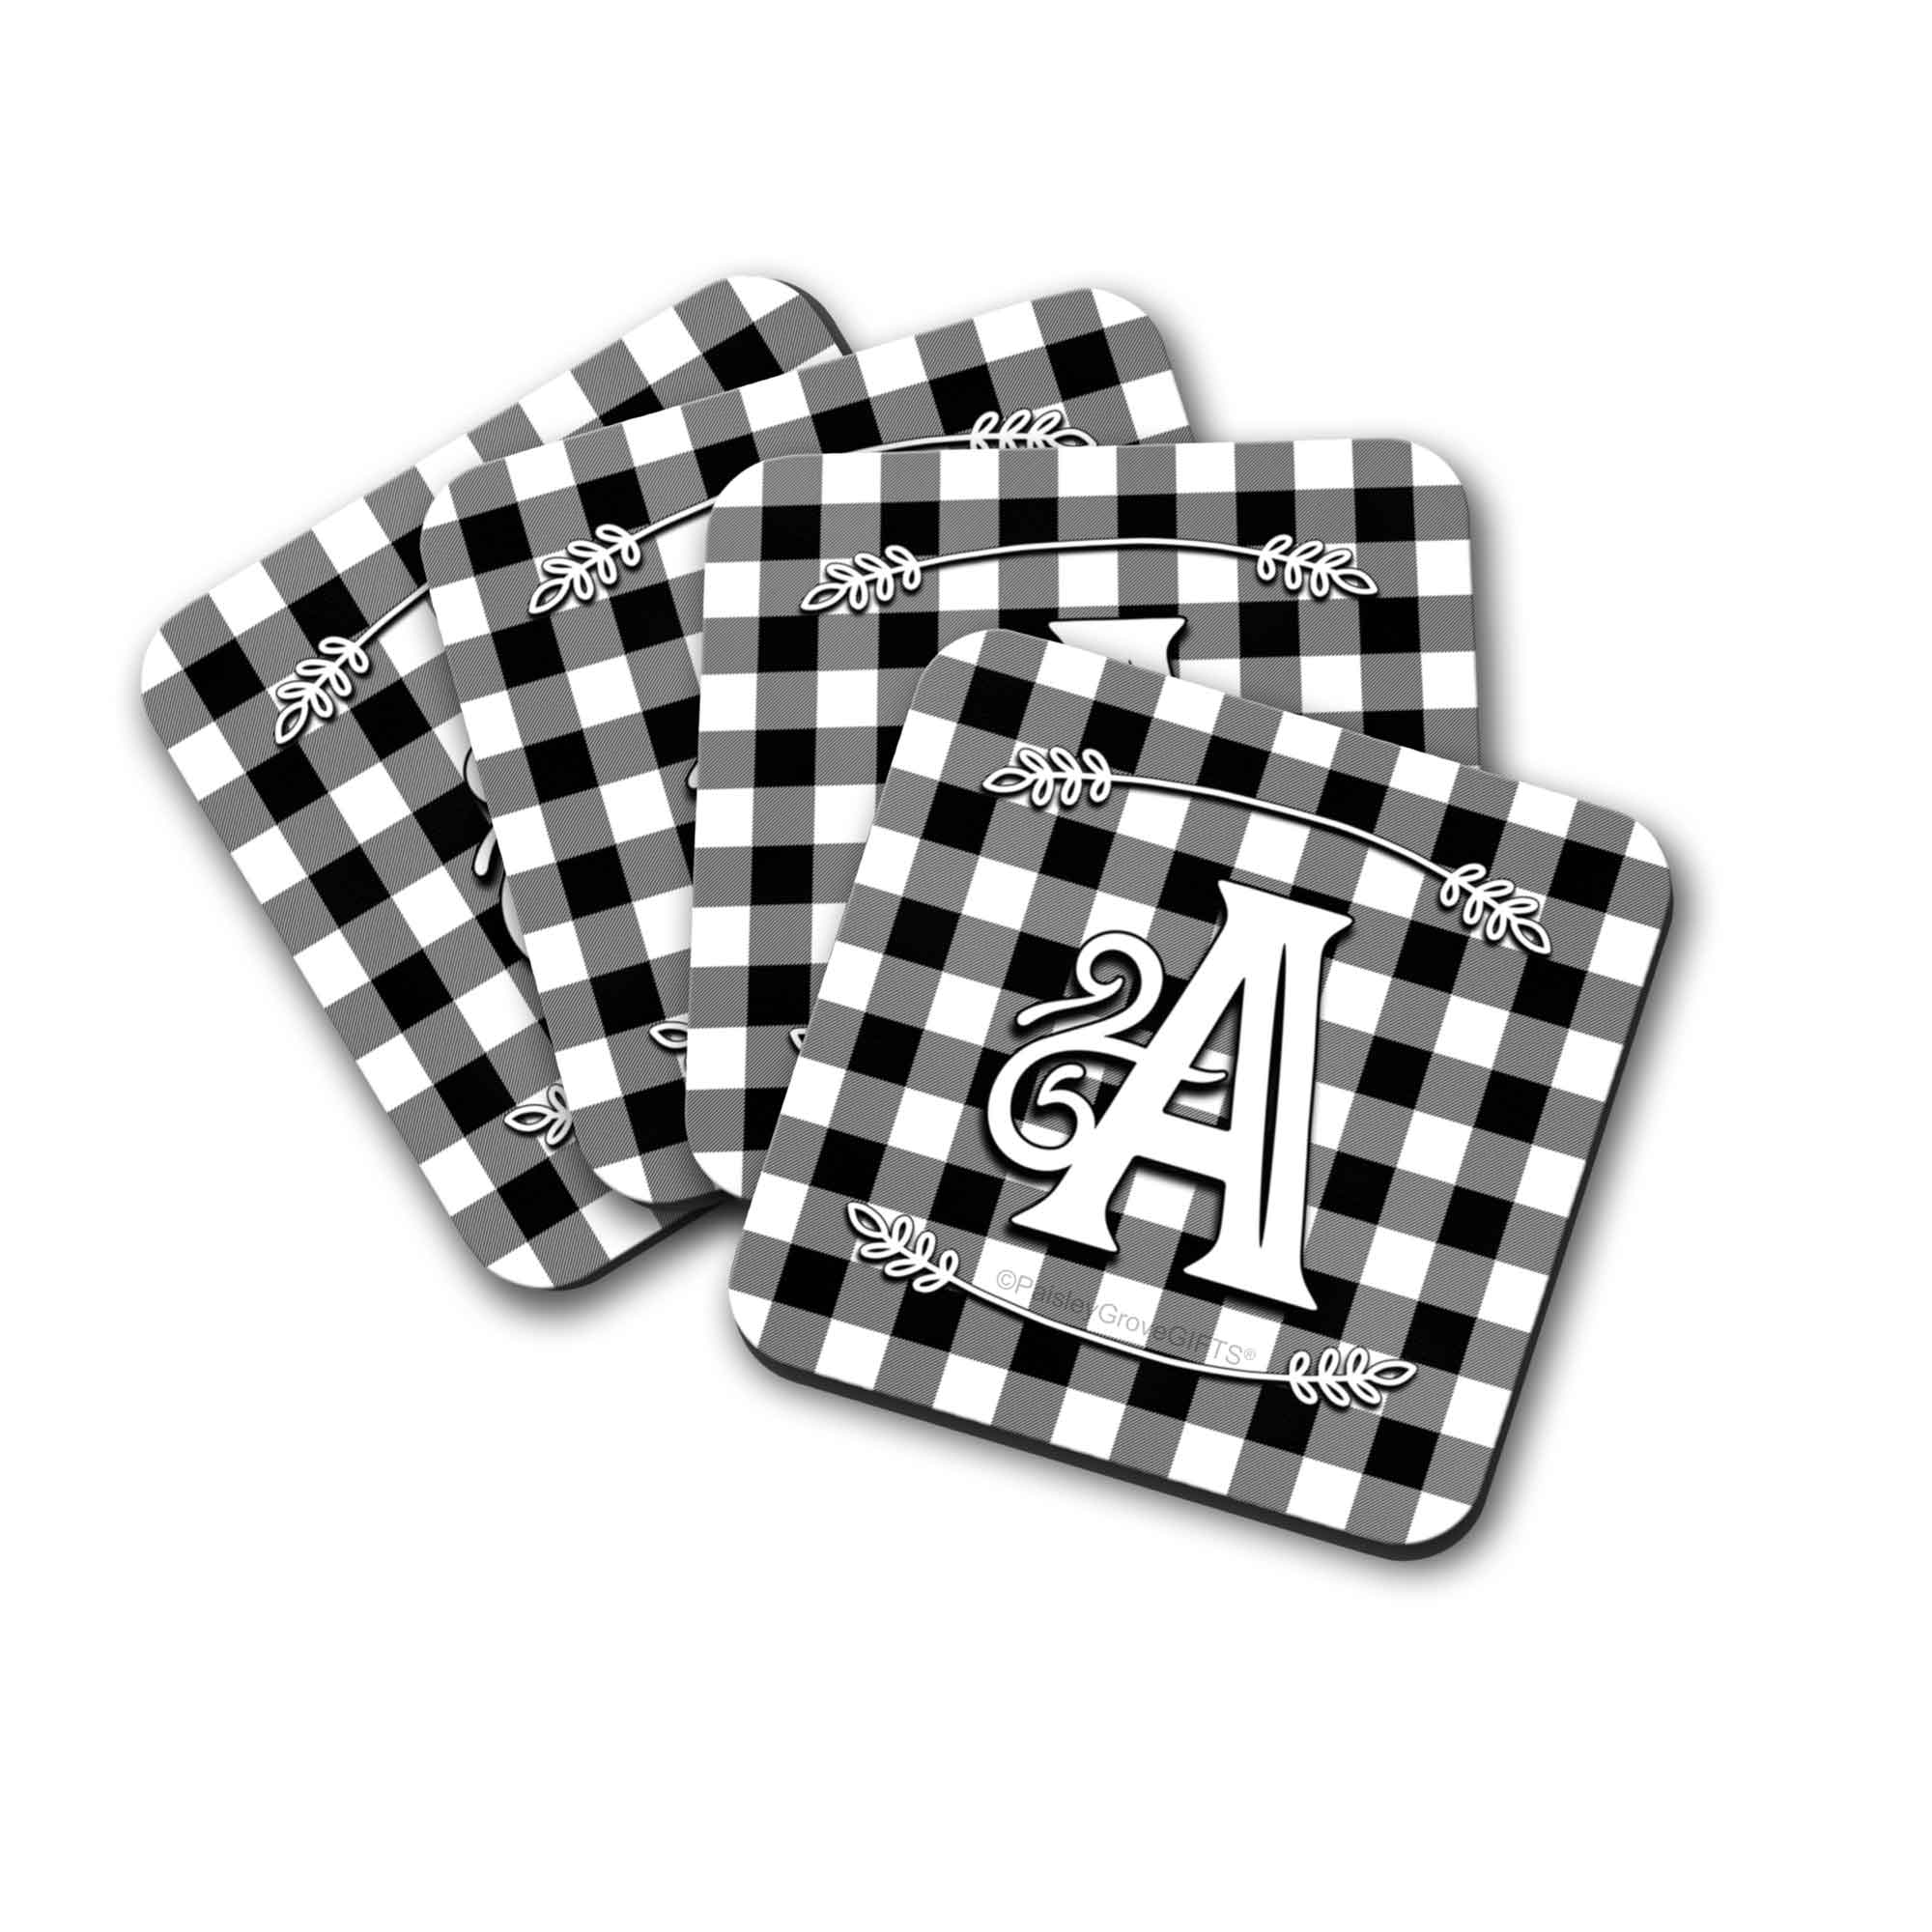 CopyrightPaisleyGroveGIFTS S704d Personalized Holiday Coasters with Black and white Buffalo Plaid Design